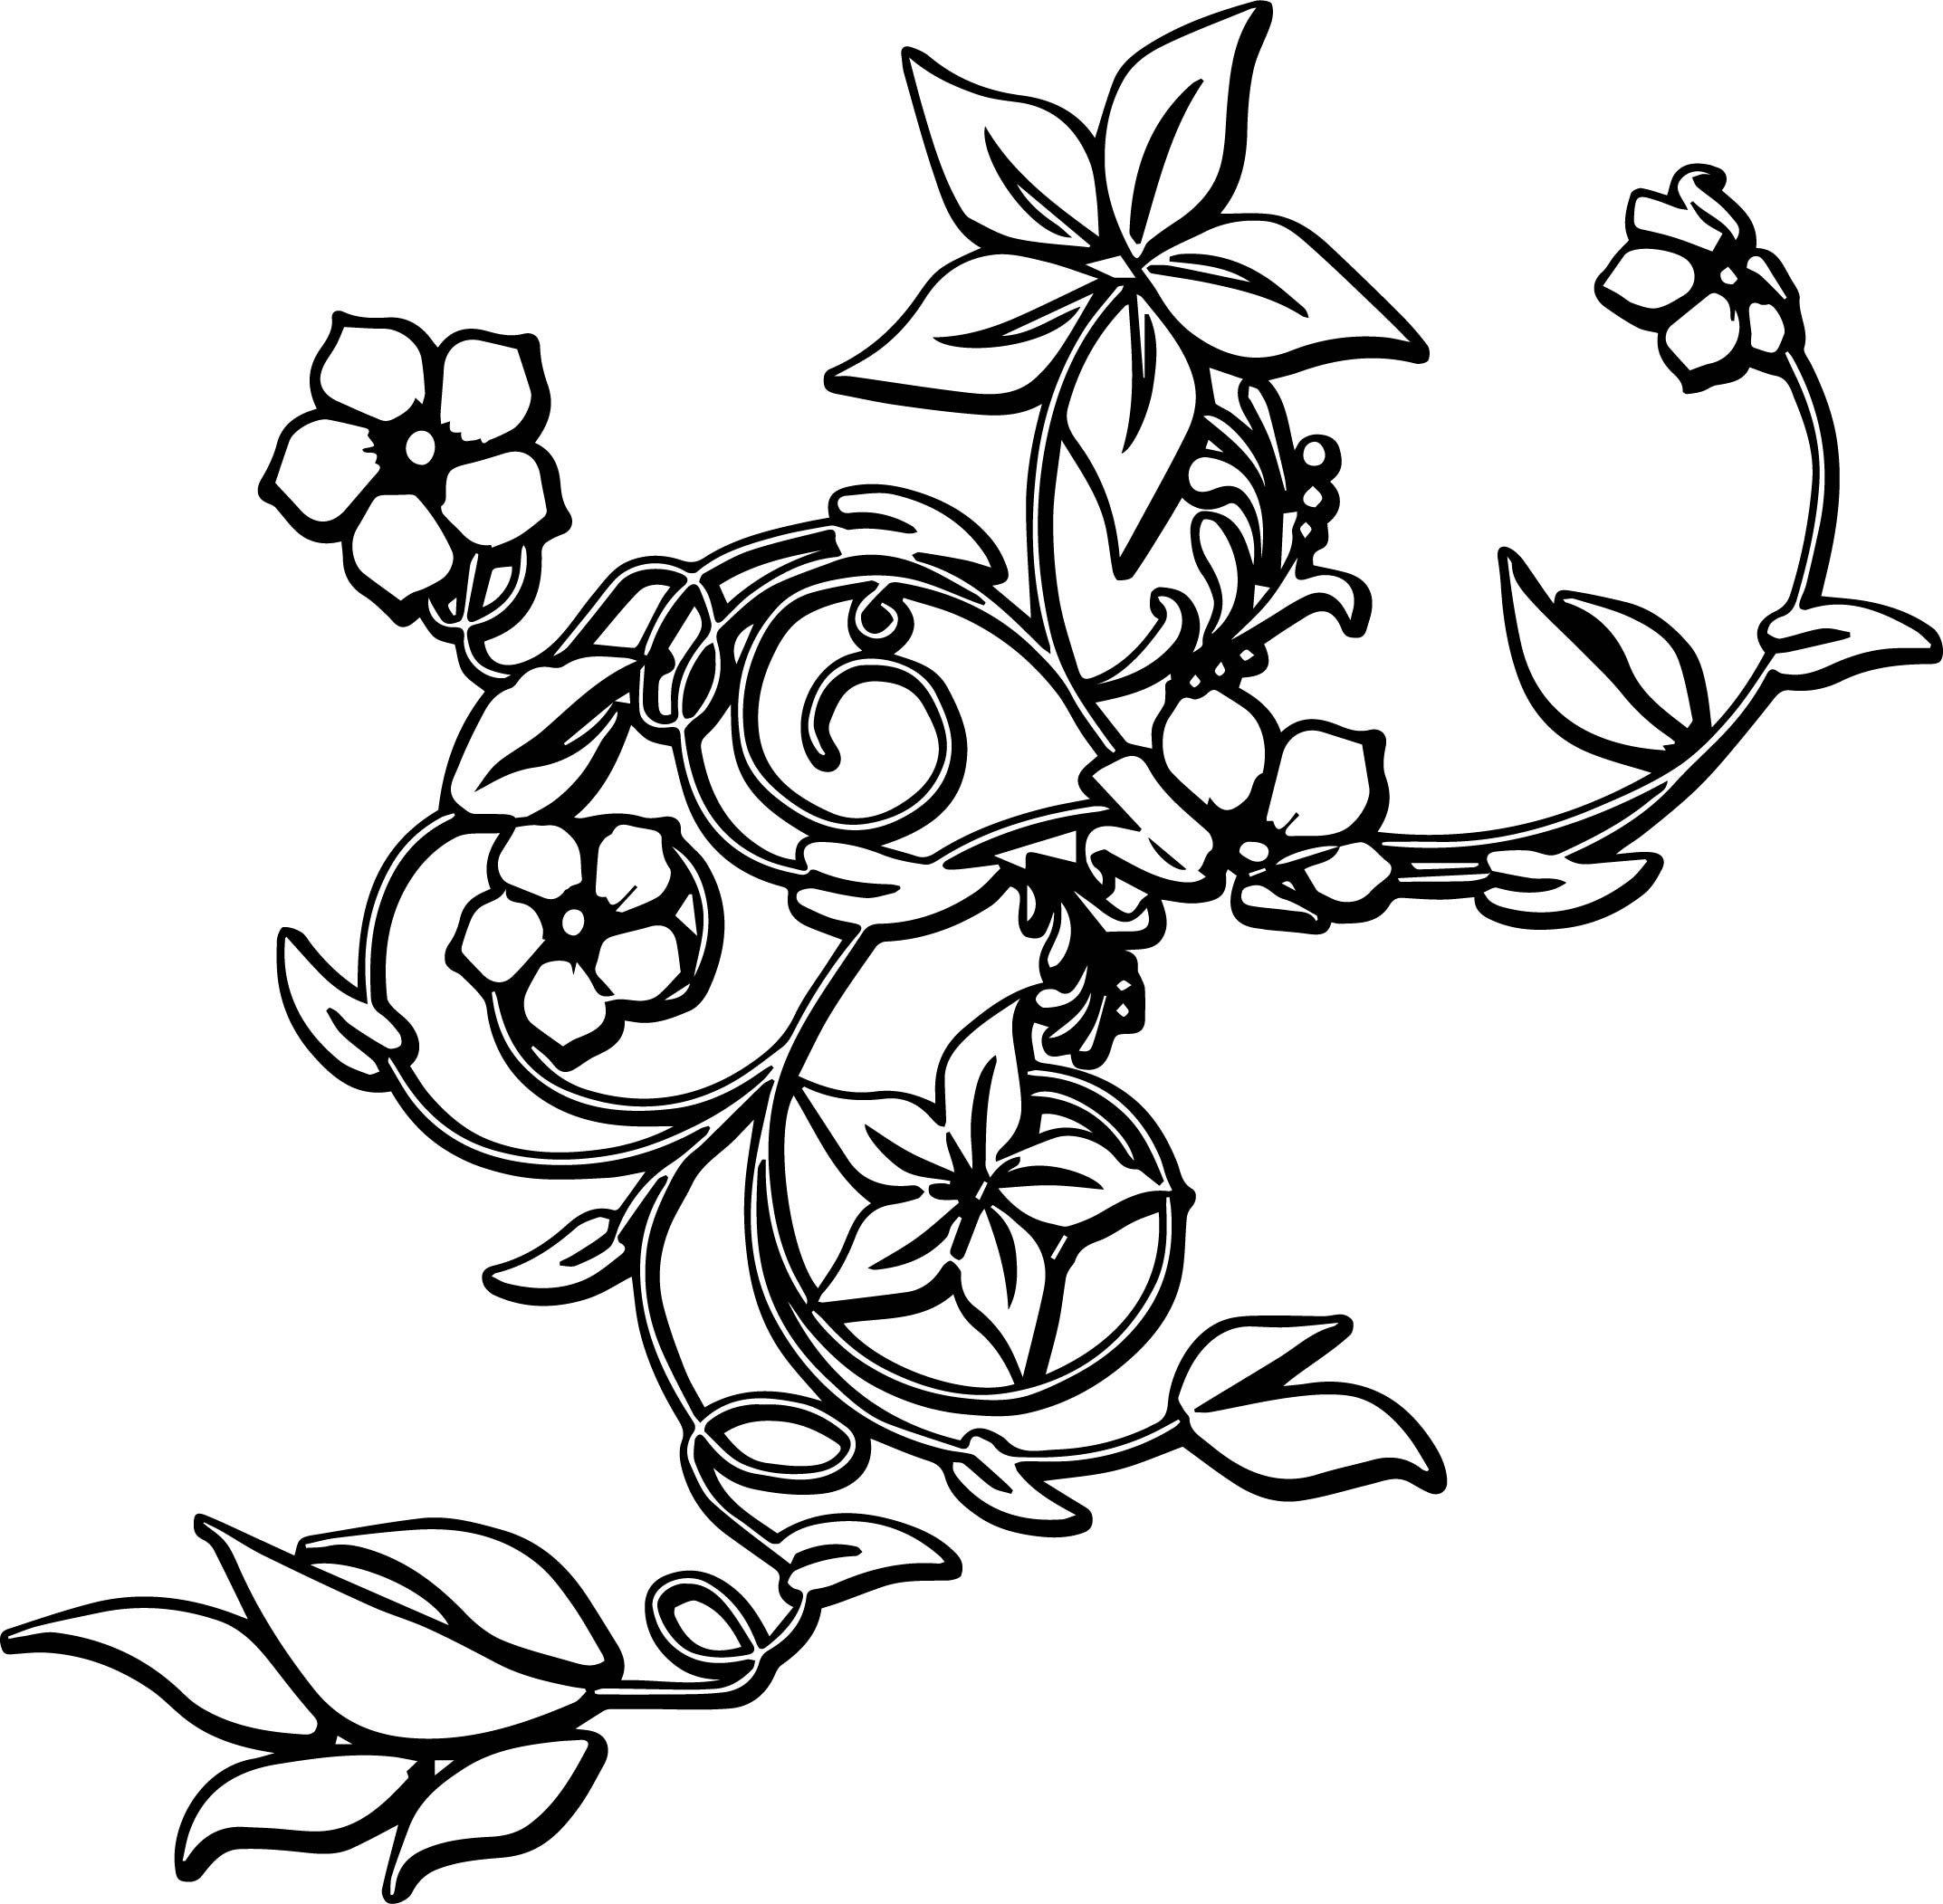 Flower Border Coloring Pages at GetDrawings | Free download